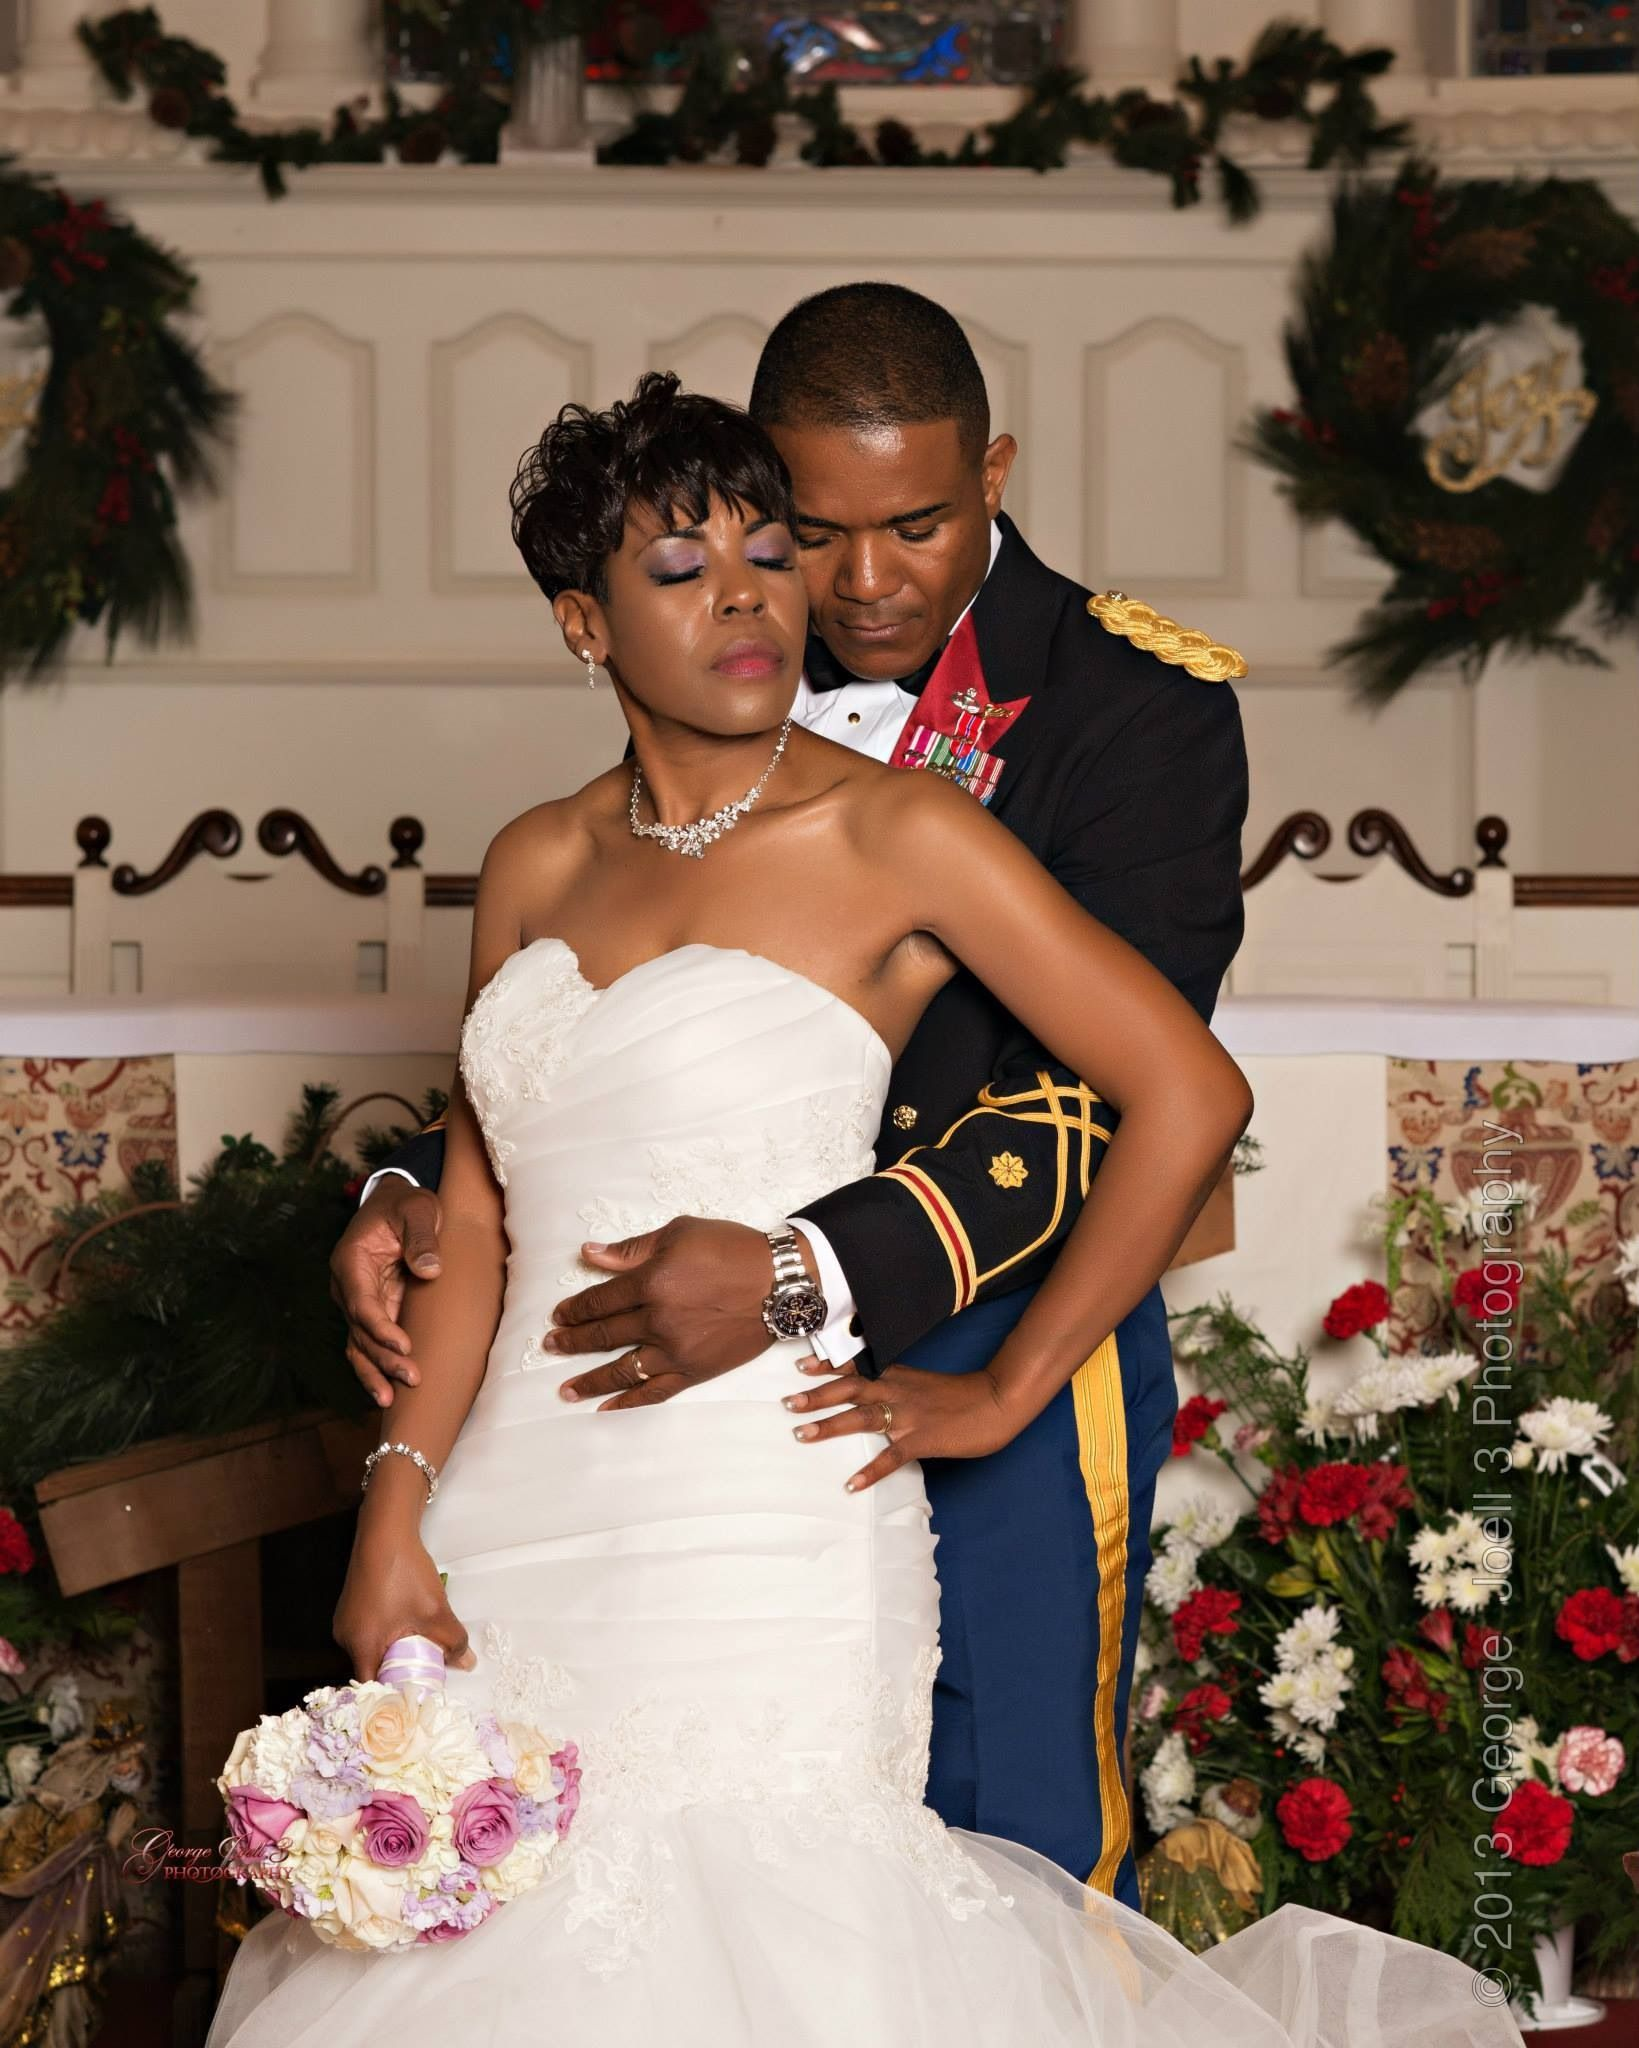 Dresses For Vow Renewal Ceremony: December 28, 2013 Vow Renewal Ceremony. My Husband And I